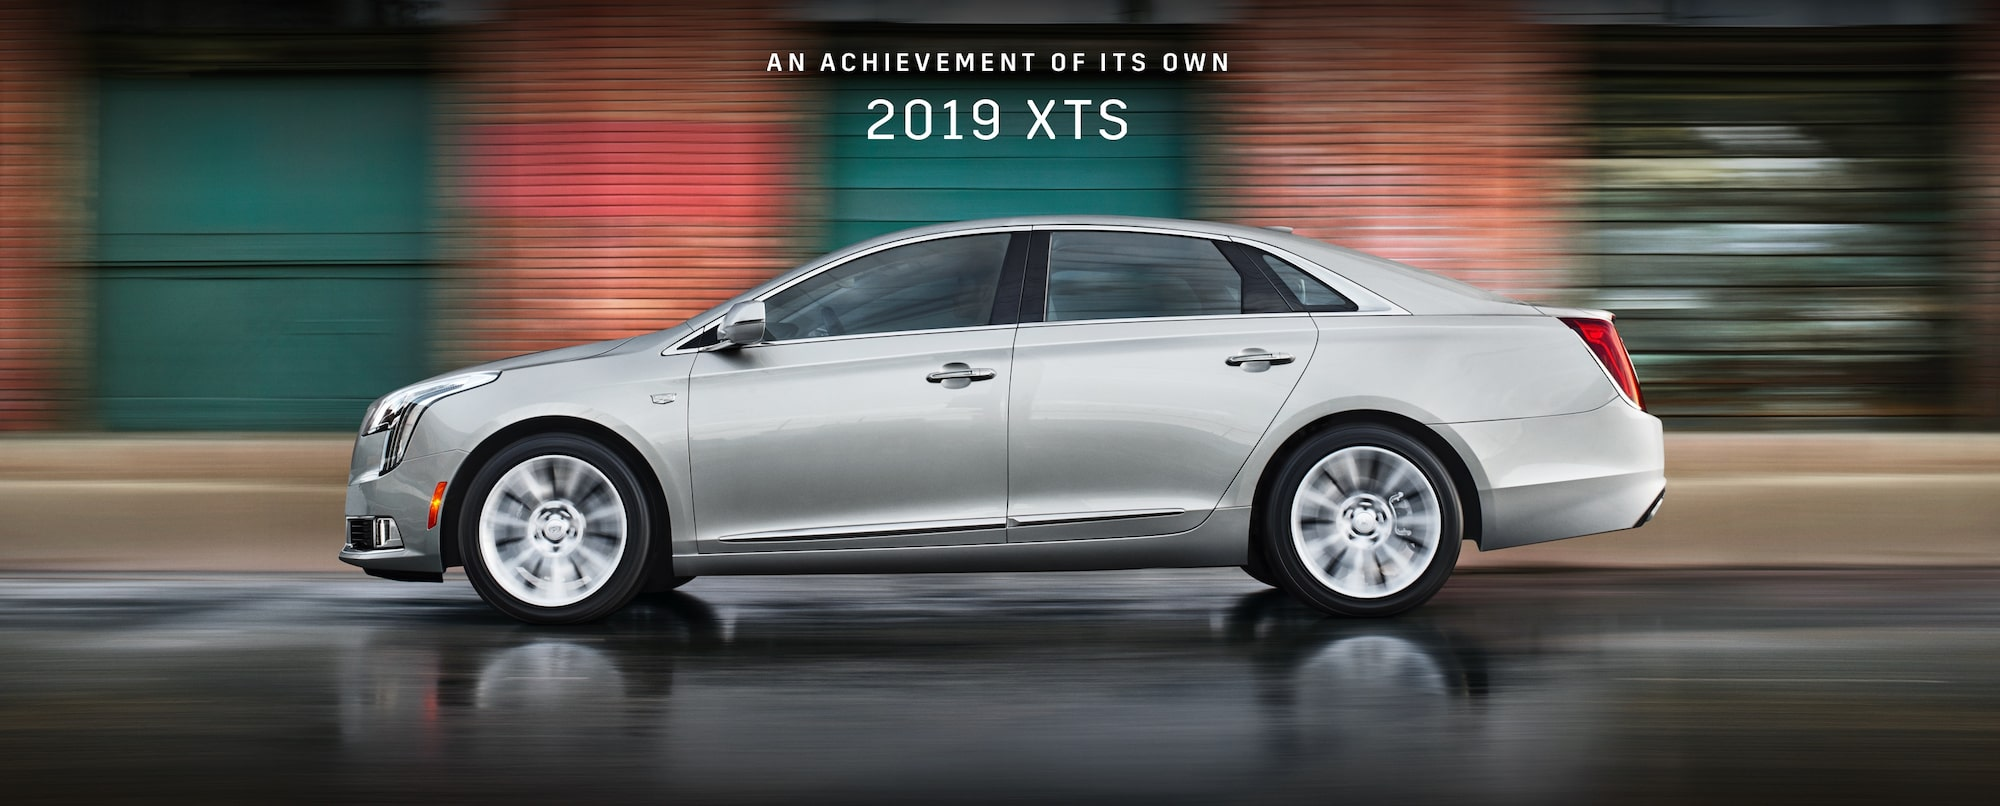 medium resolution of xts wiring diagram wiring diagrams lol 2012 cadillac xts wiring diagram wiring library diagram h9 series